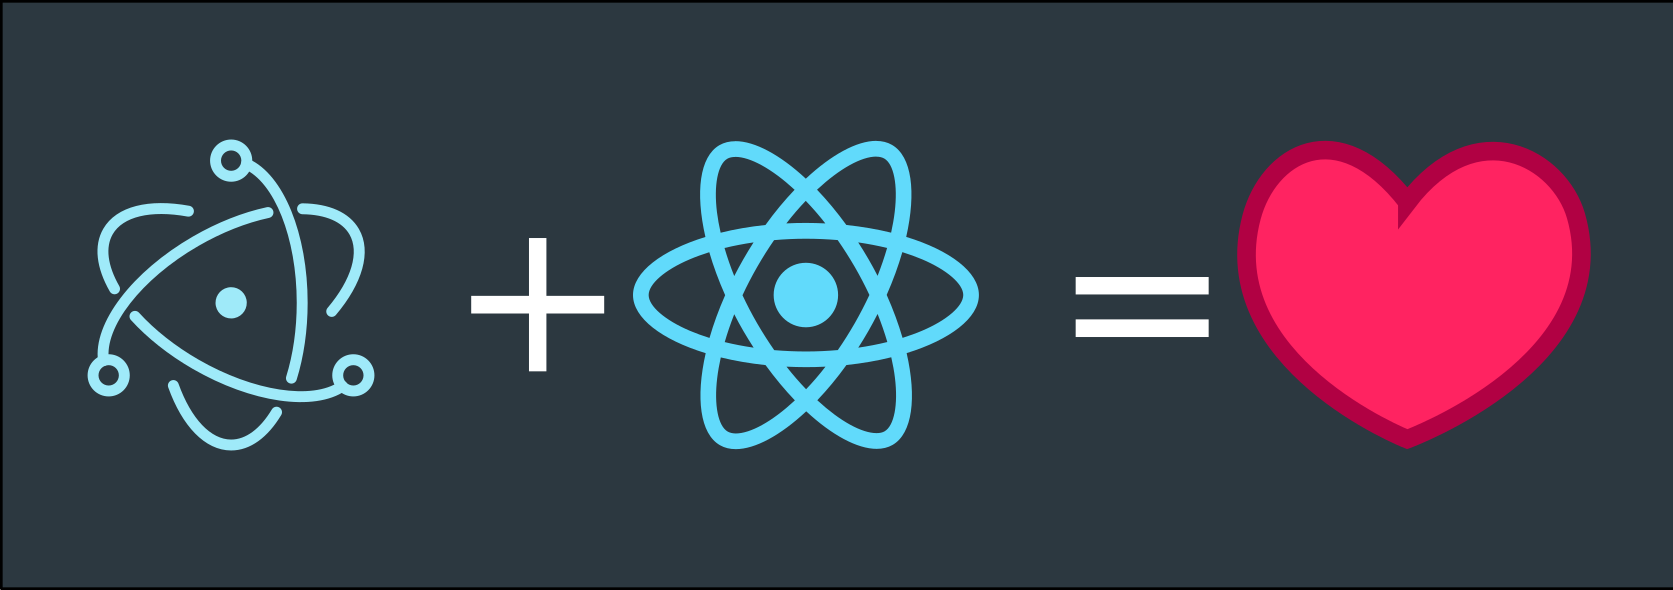 Cross-Platform Apps With Electron and React: Part 2